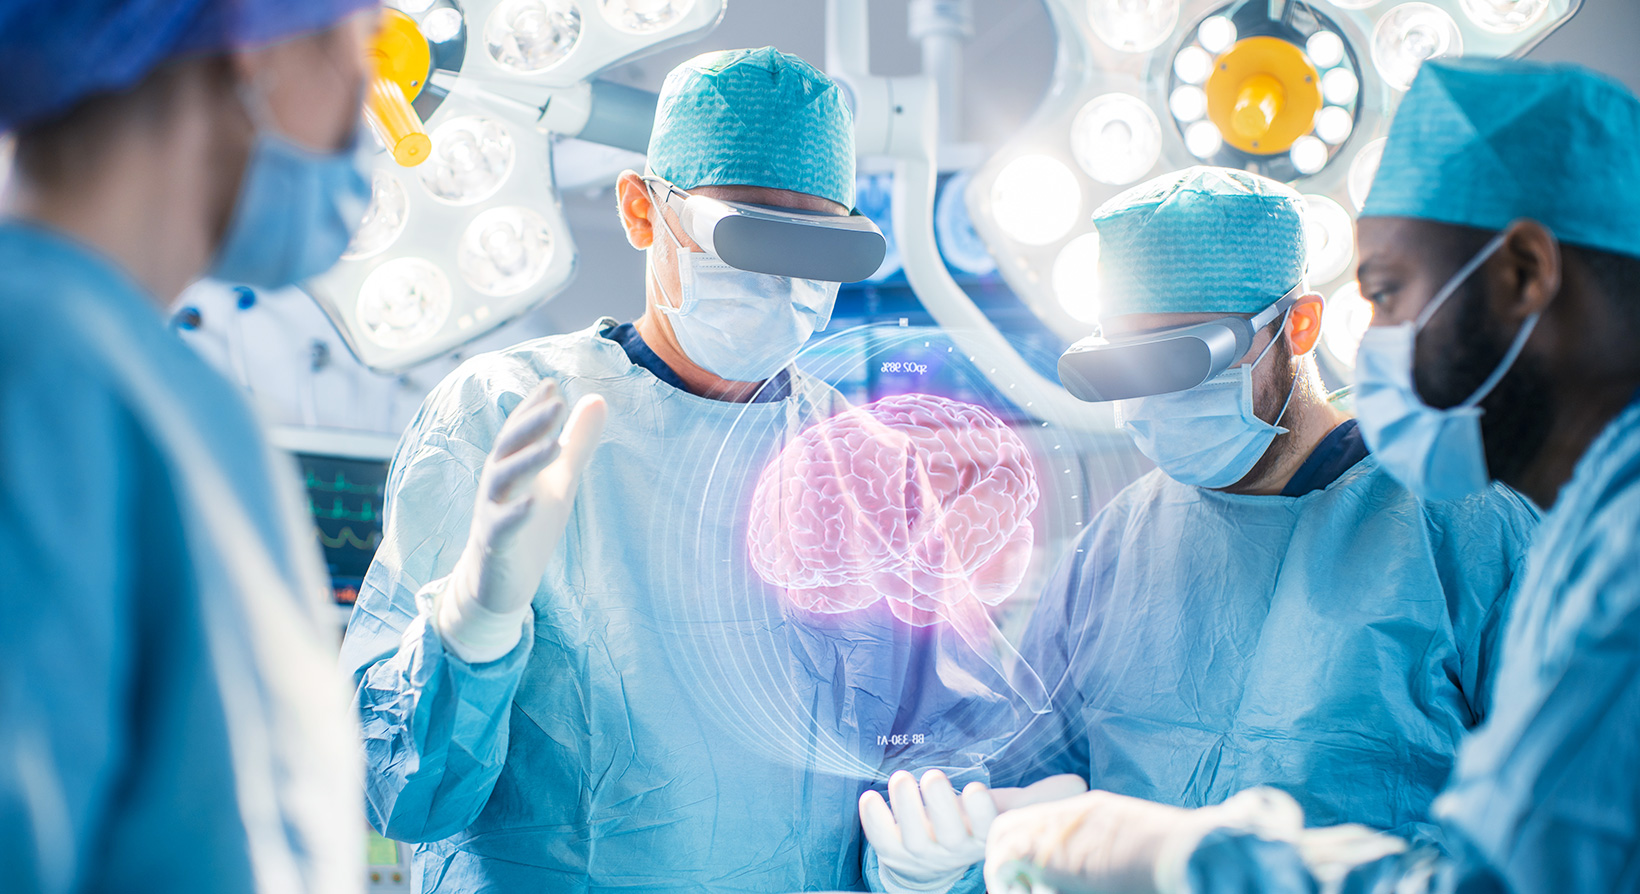 Surgeons Perform Brain Surgery Using Augmented Reality, Animated 3D Brain